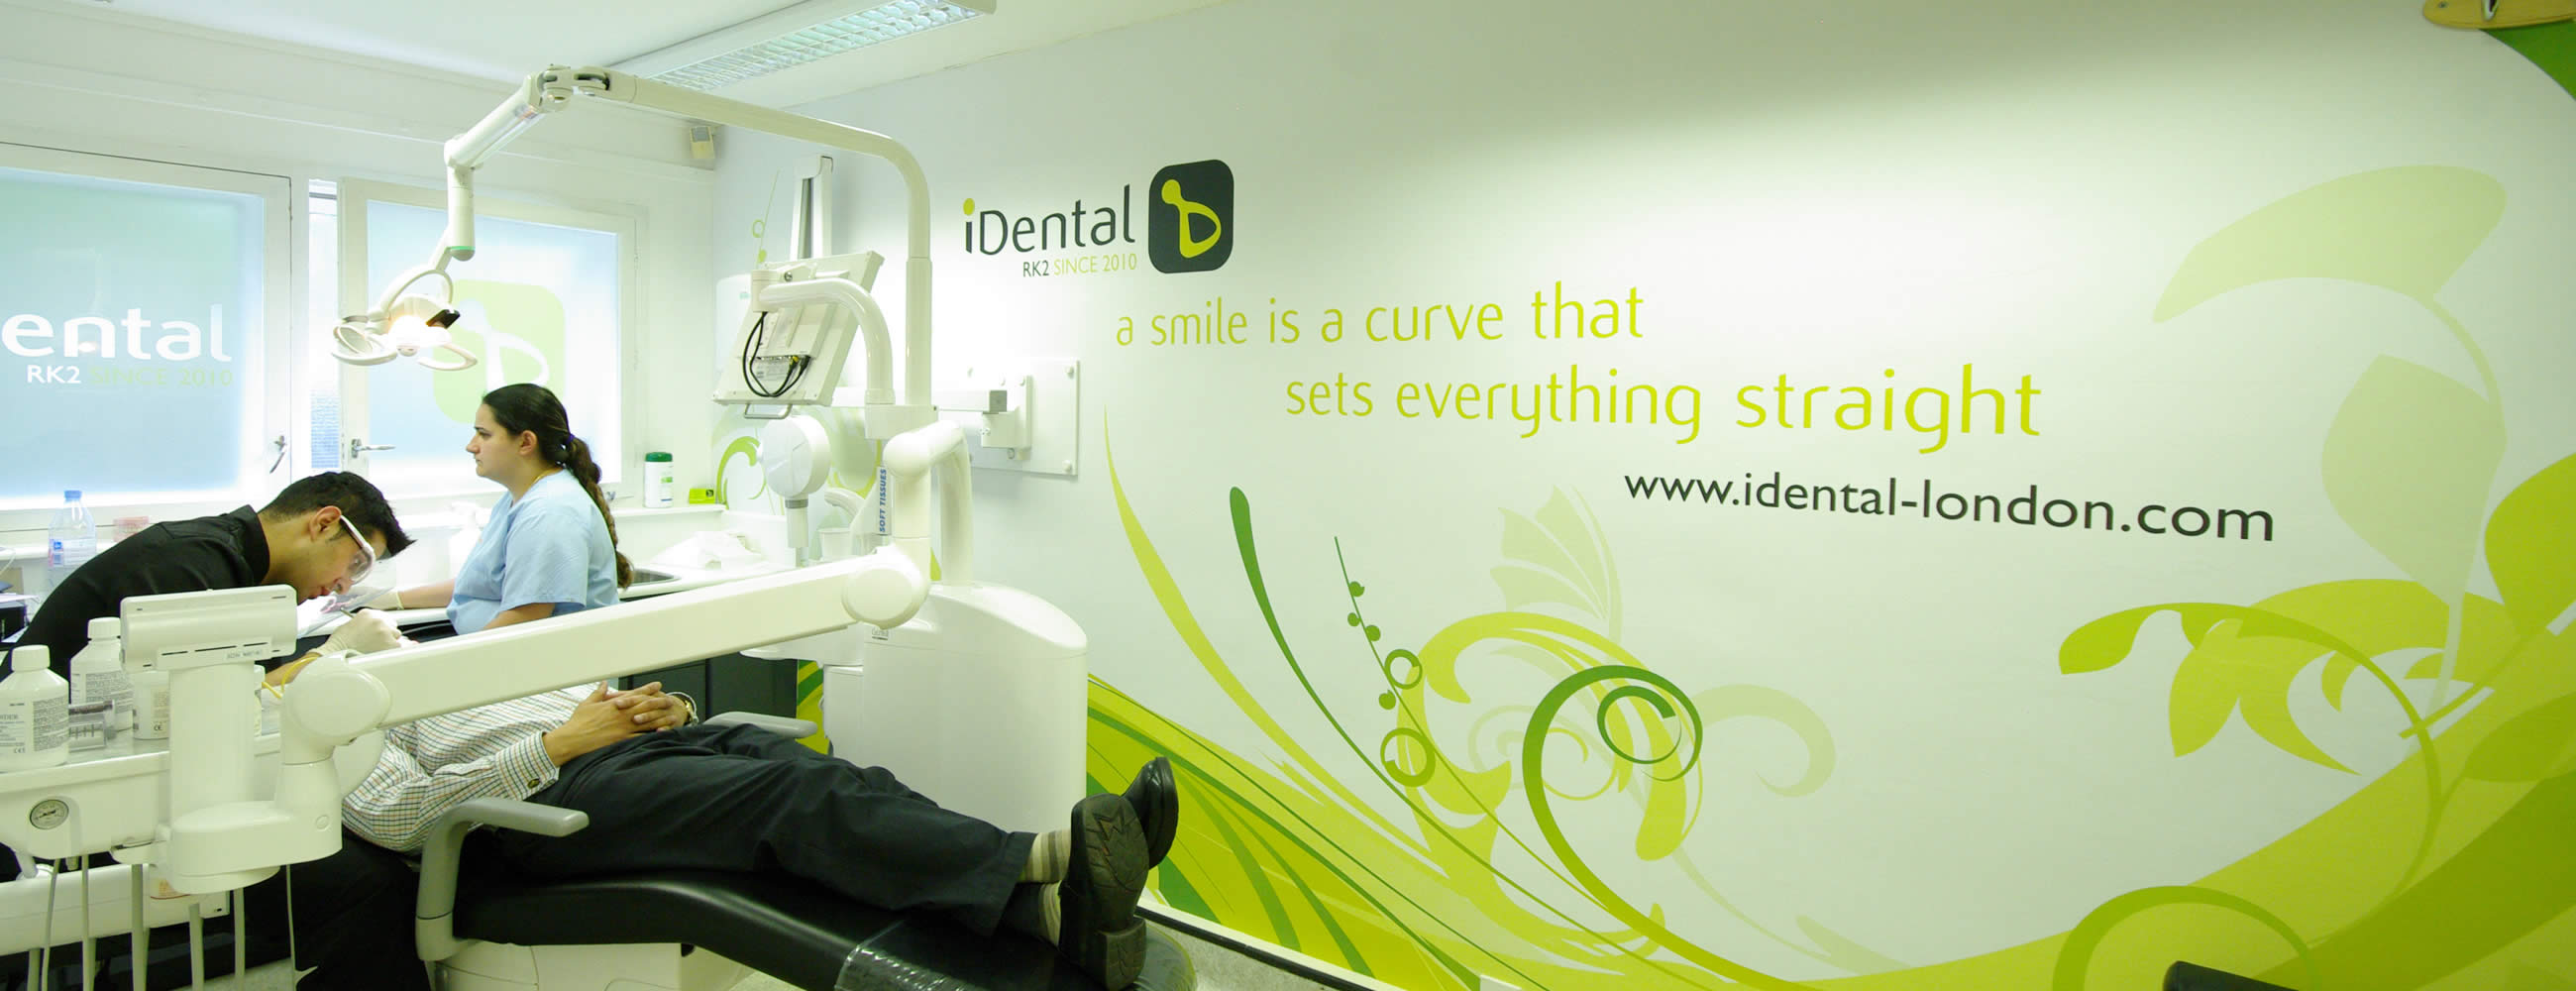 About iDental London in West London